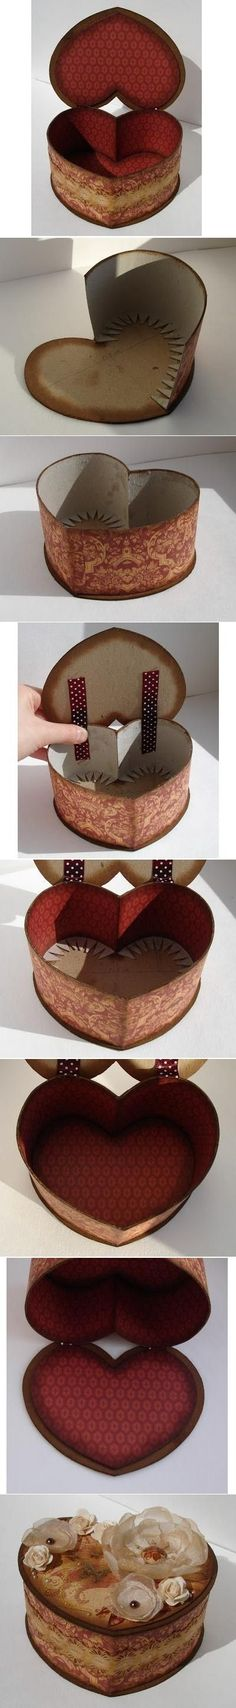 DIY Cardboard Heart Shaped Box DIY Cardboard Heart Shaped Box and Instructions! DIY Cardboard Heart Shaped Box DIY Cardboard Heart Shaped Box and Instructions! Diy Projects To Try, Craft Projects, Diy Paper, Paper Crafts, Cardboard Crafts, Diy Box, Diy Gifts, Heart Shapes, Fun Crafts